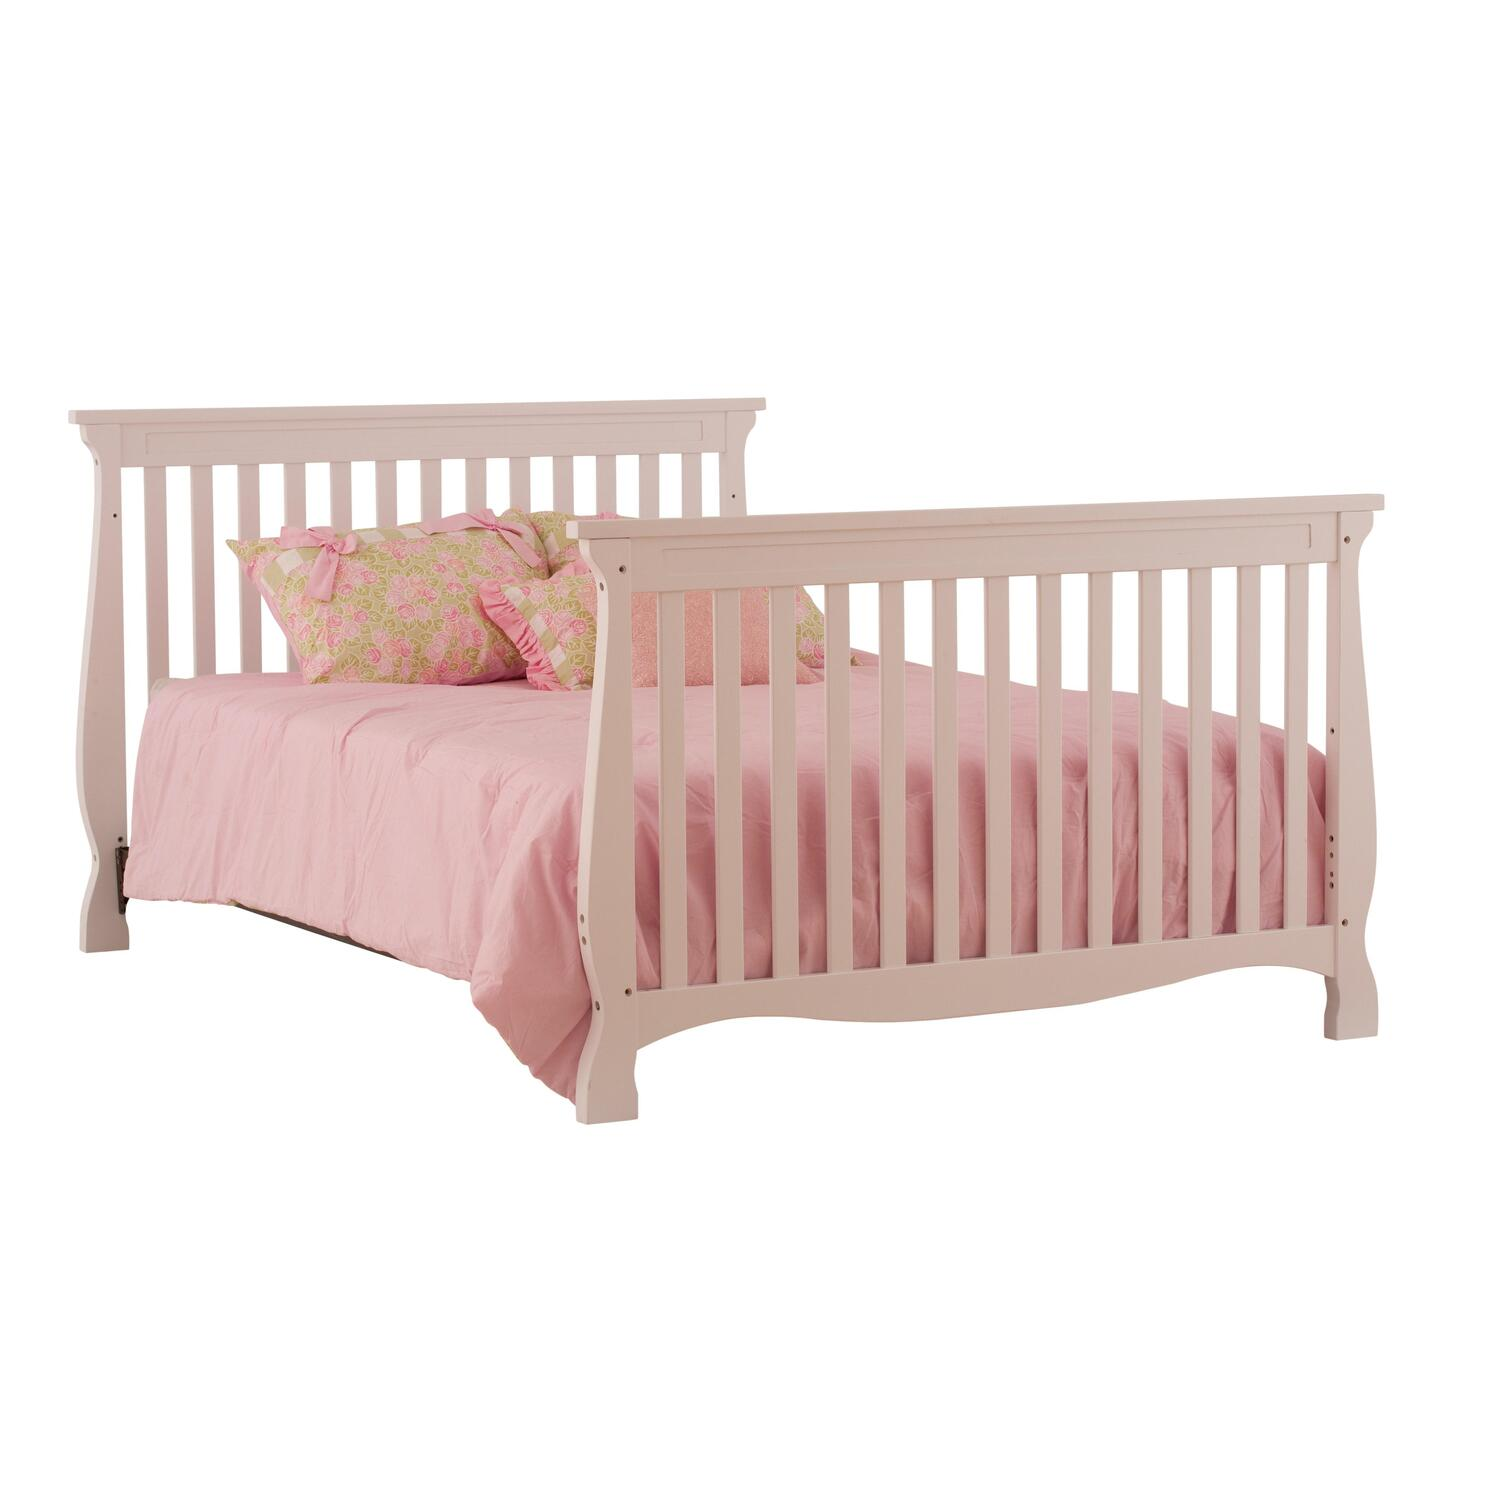 Kohls Com Kids Cloud Bed Set